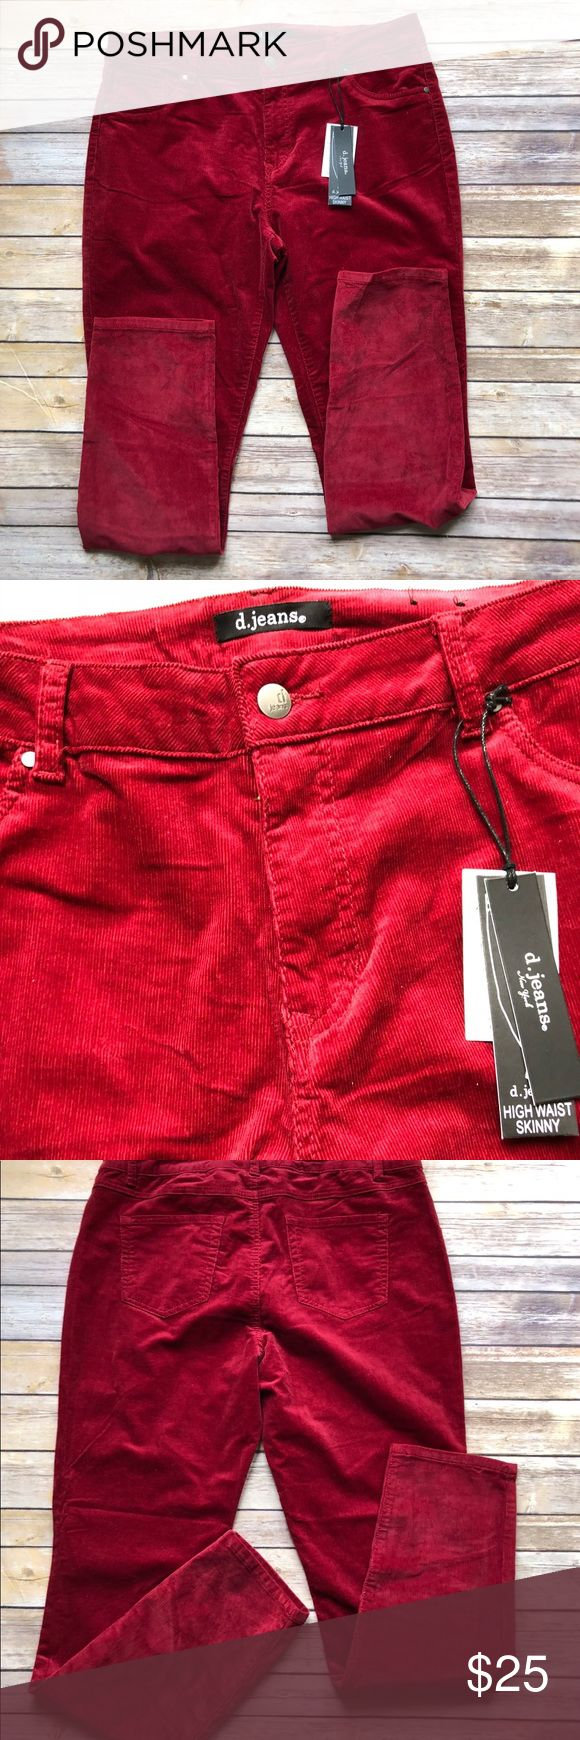 """Red Cranberry Jean Pants Soft and stretchy with an awesome color, NWT  Cotton and spandex L42"""" laid flat W 18"""" laid flat Thigh 12"""" laid flat Ins 31"""" laid flat Cuff 6"""" Rise app 11"""" laid flat d.jeans Pants Skinny"""